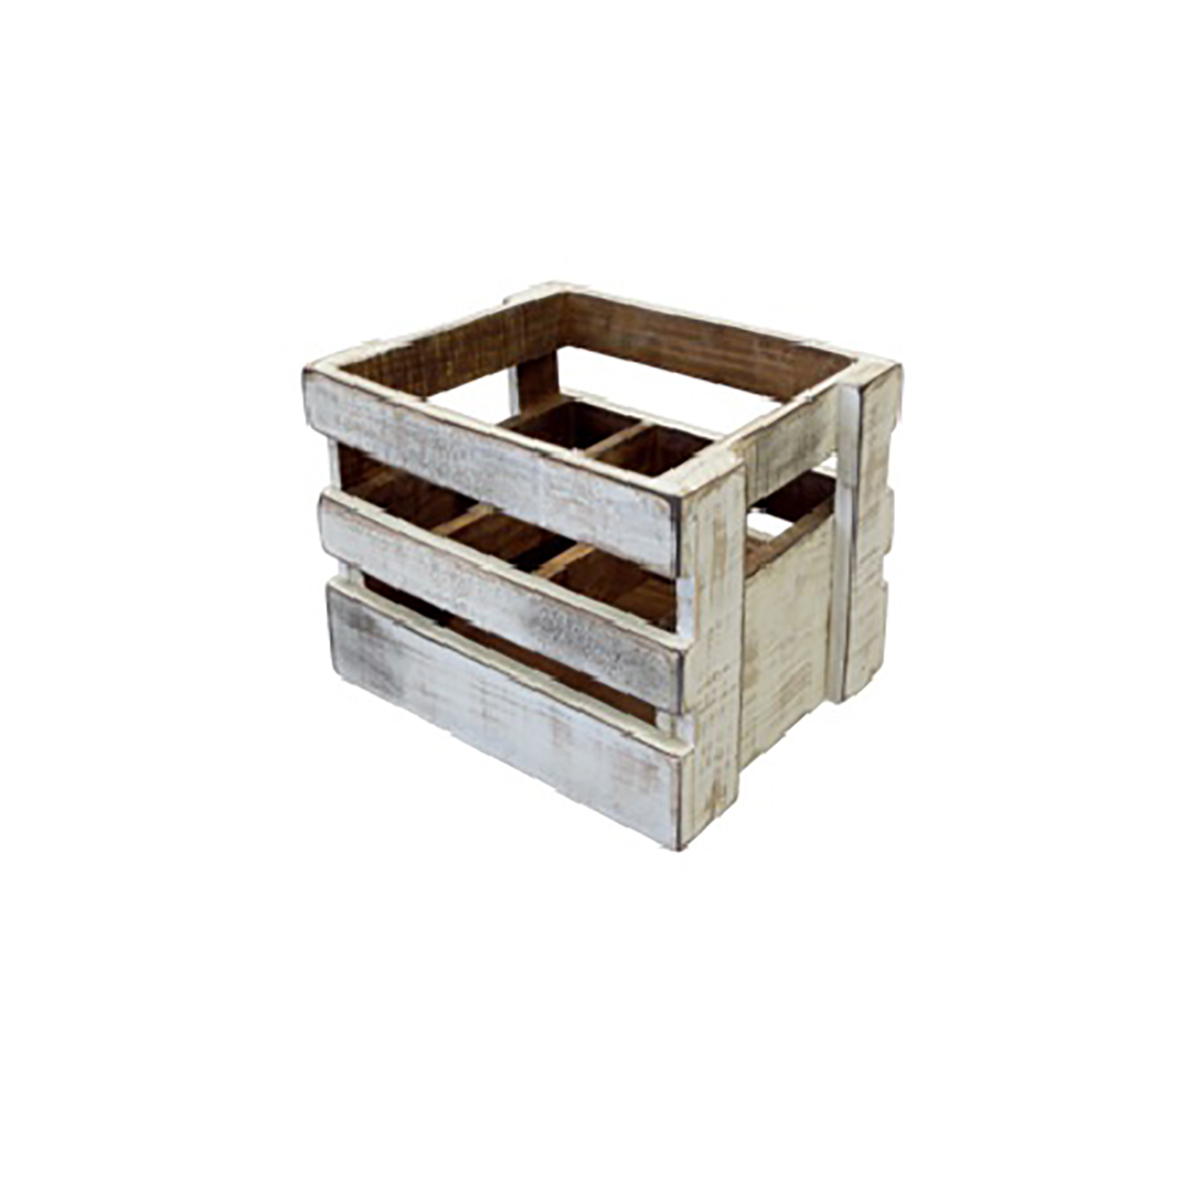 Slatted Wood Crate